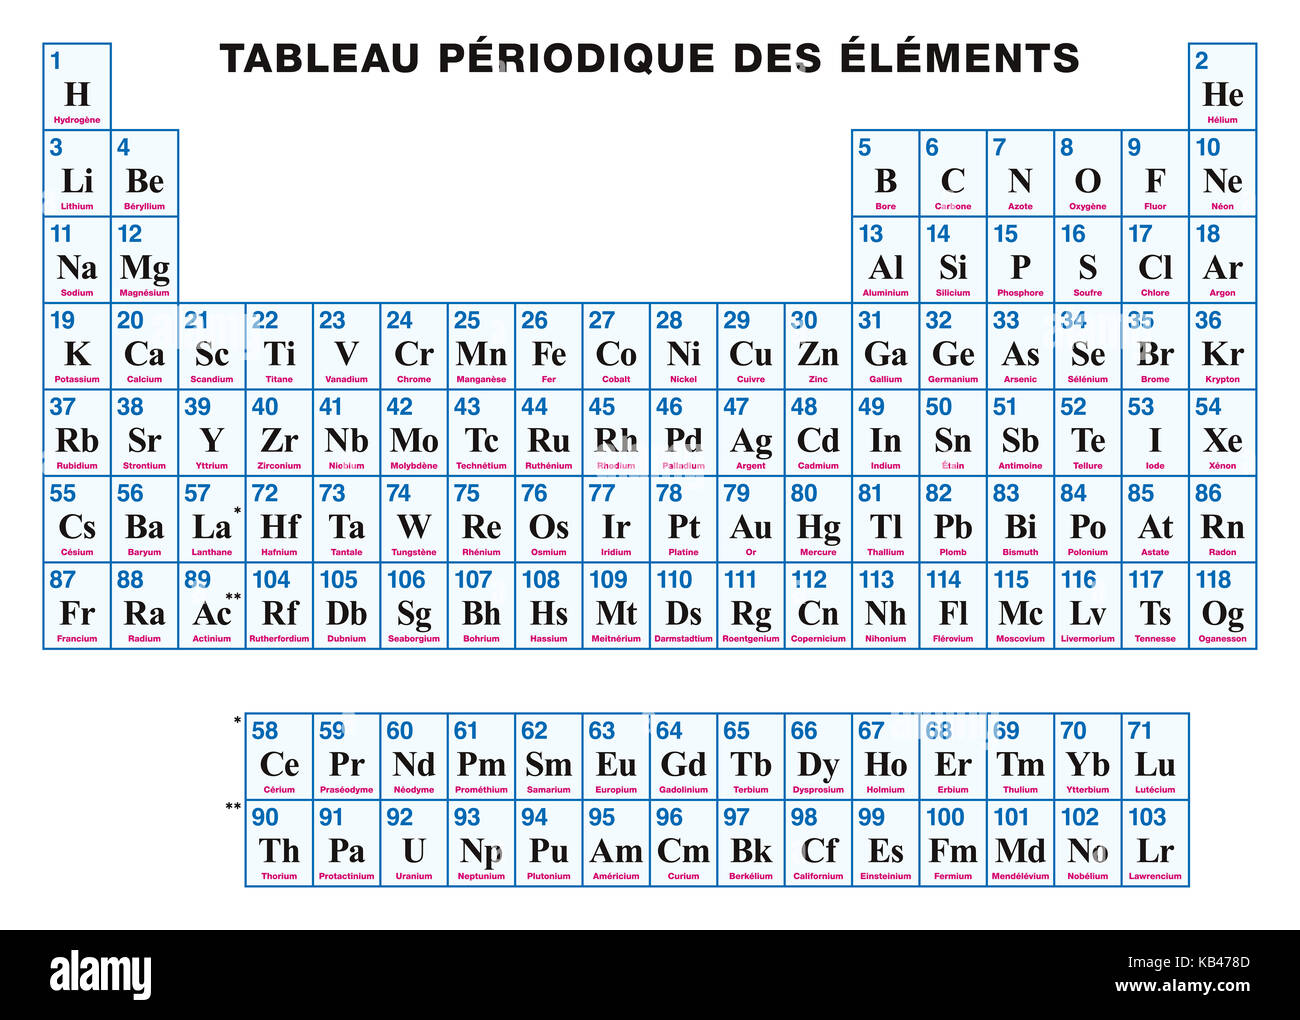 Periodic table of the elements french tabular arrangement of stock periodic table of the elements french tabular arrangement of chemical elements with their atomic numbers symbols and names 118 confirmed elements urtaz Choice Image